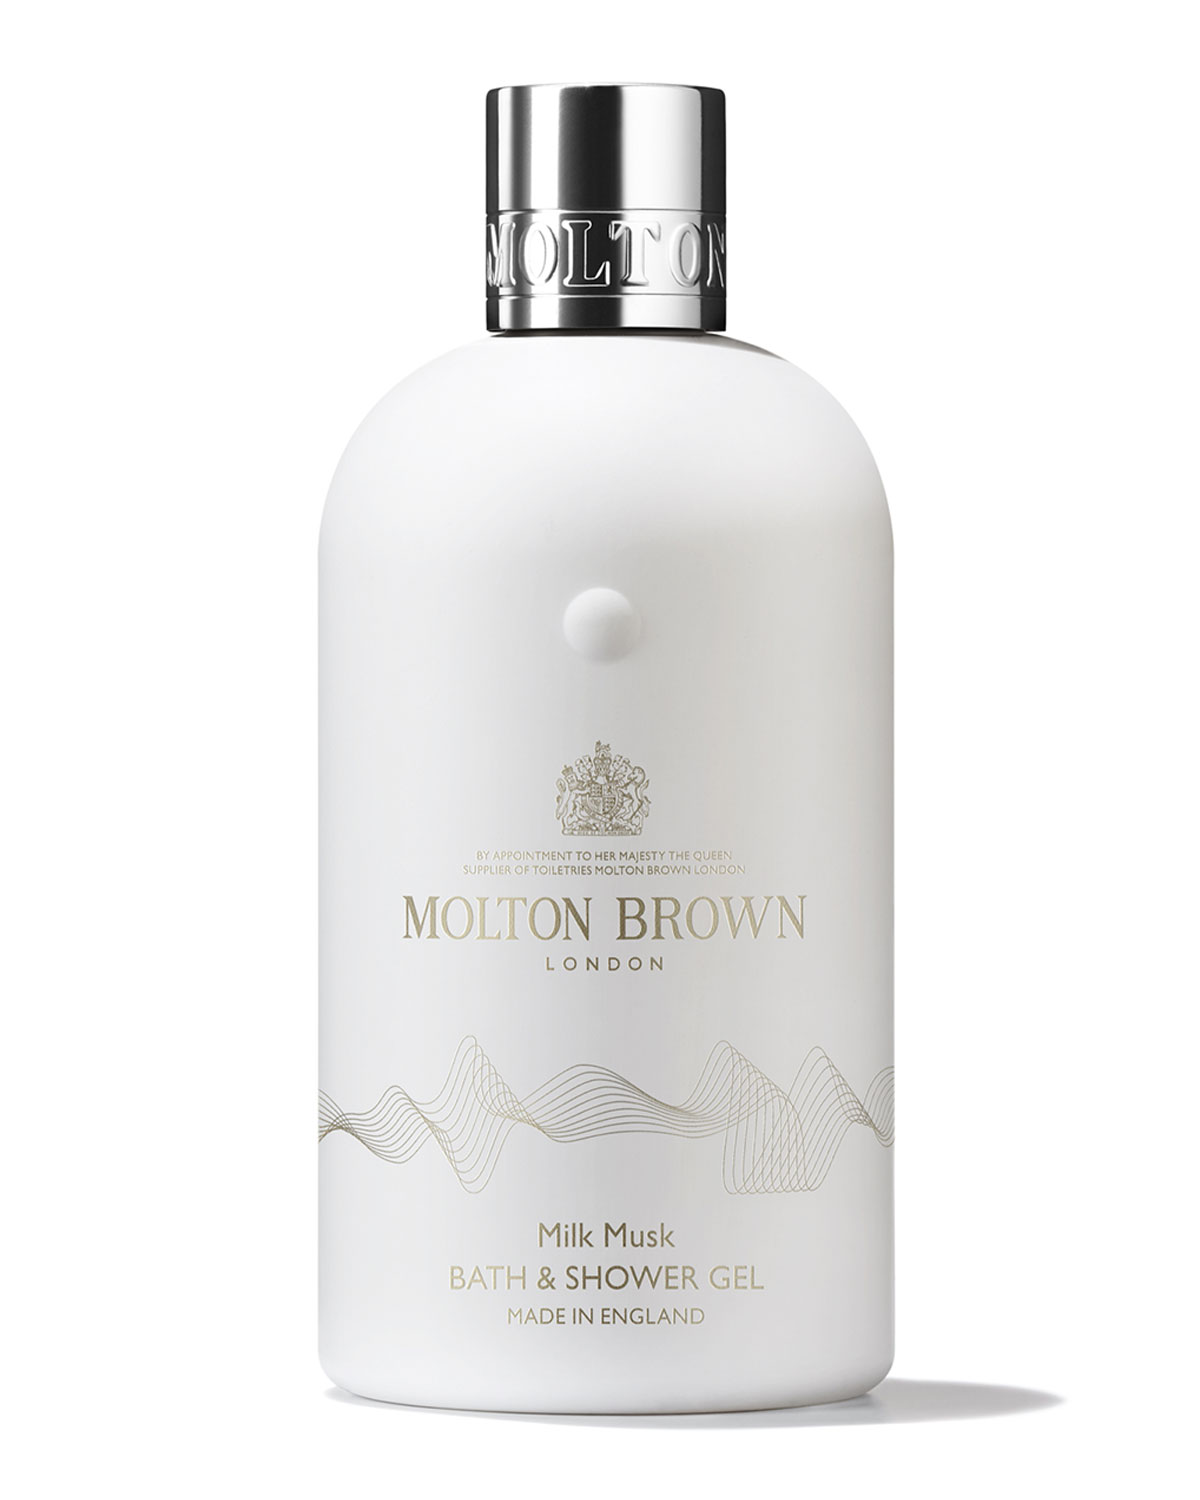 Molton Brown 10 oz. Milk Musk Bath & Shower Gel